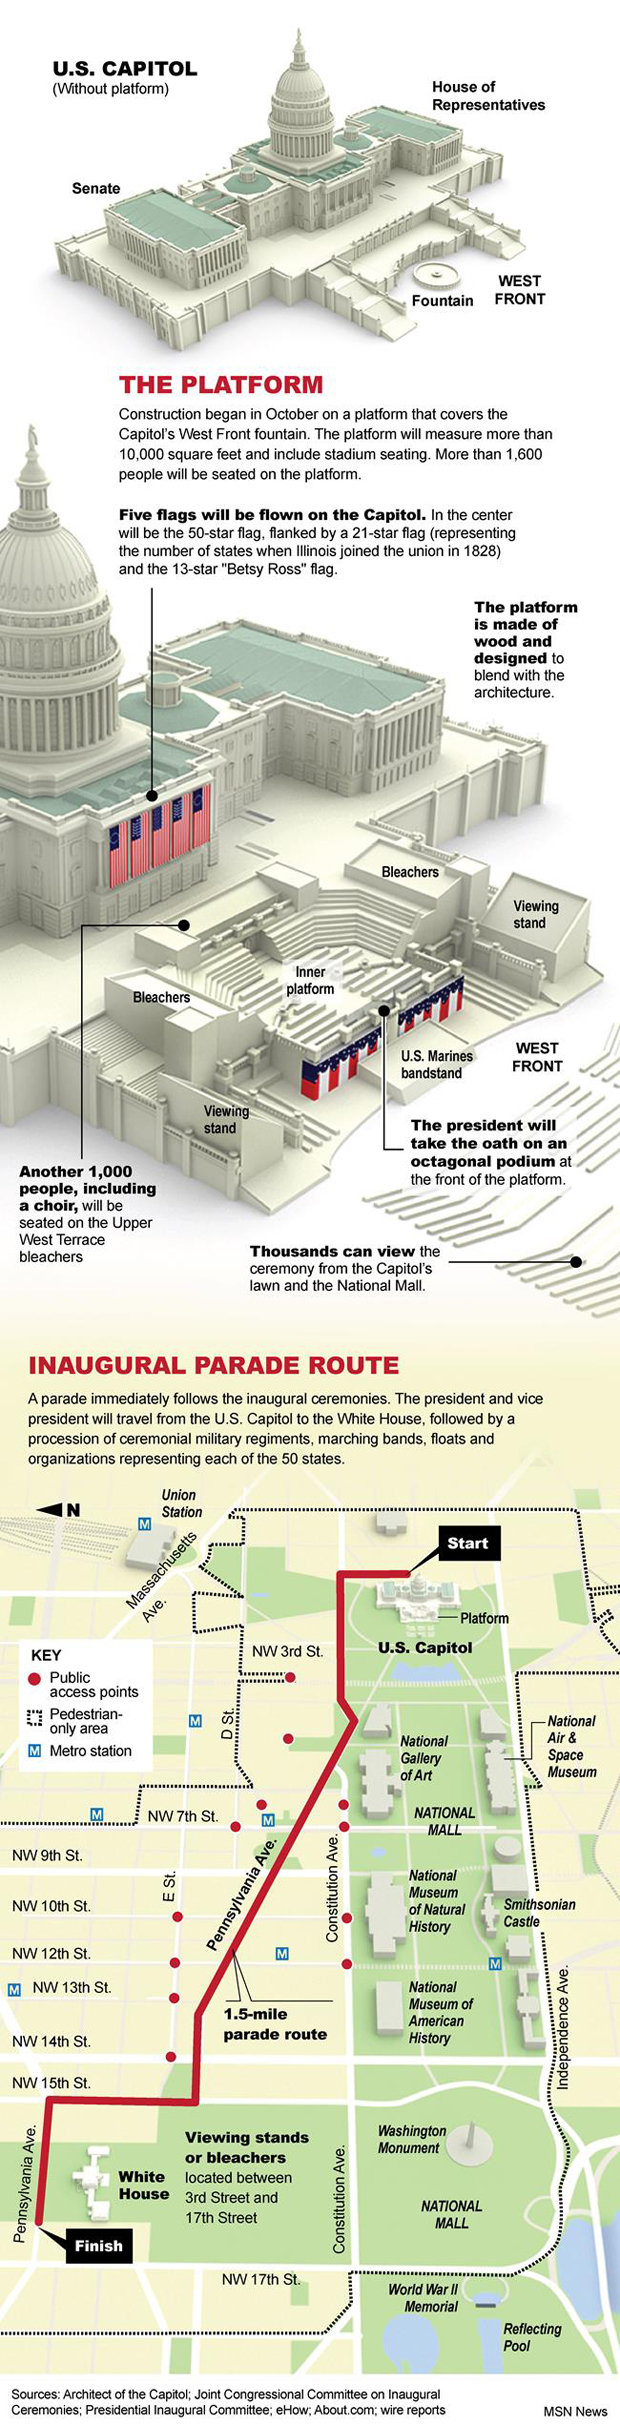 57th Inauguration platform and parade